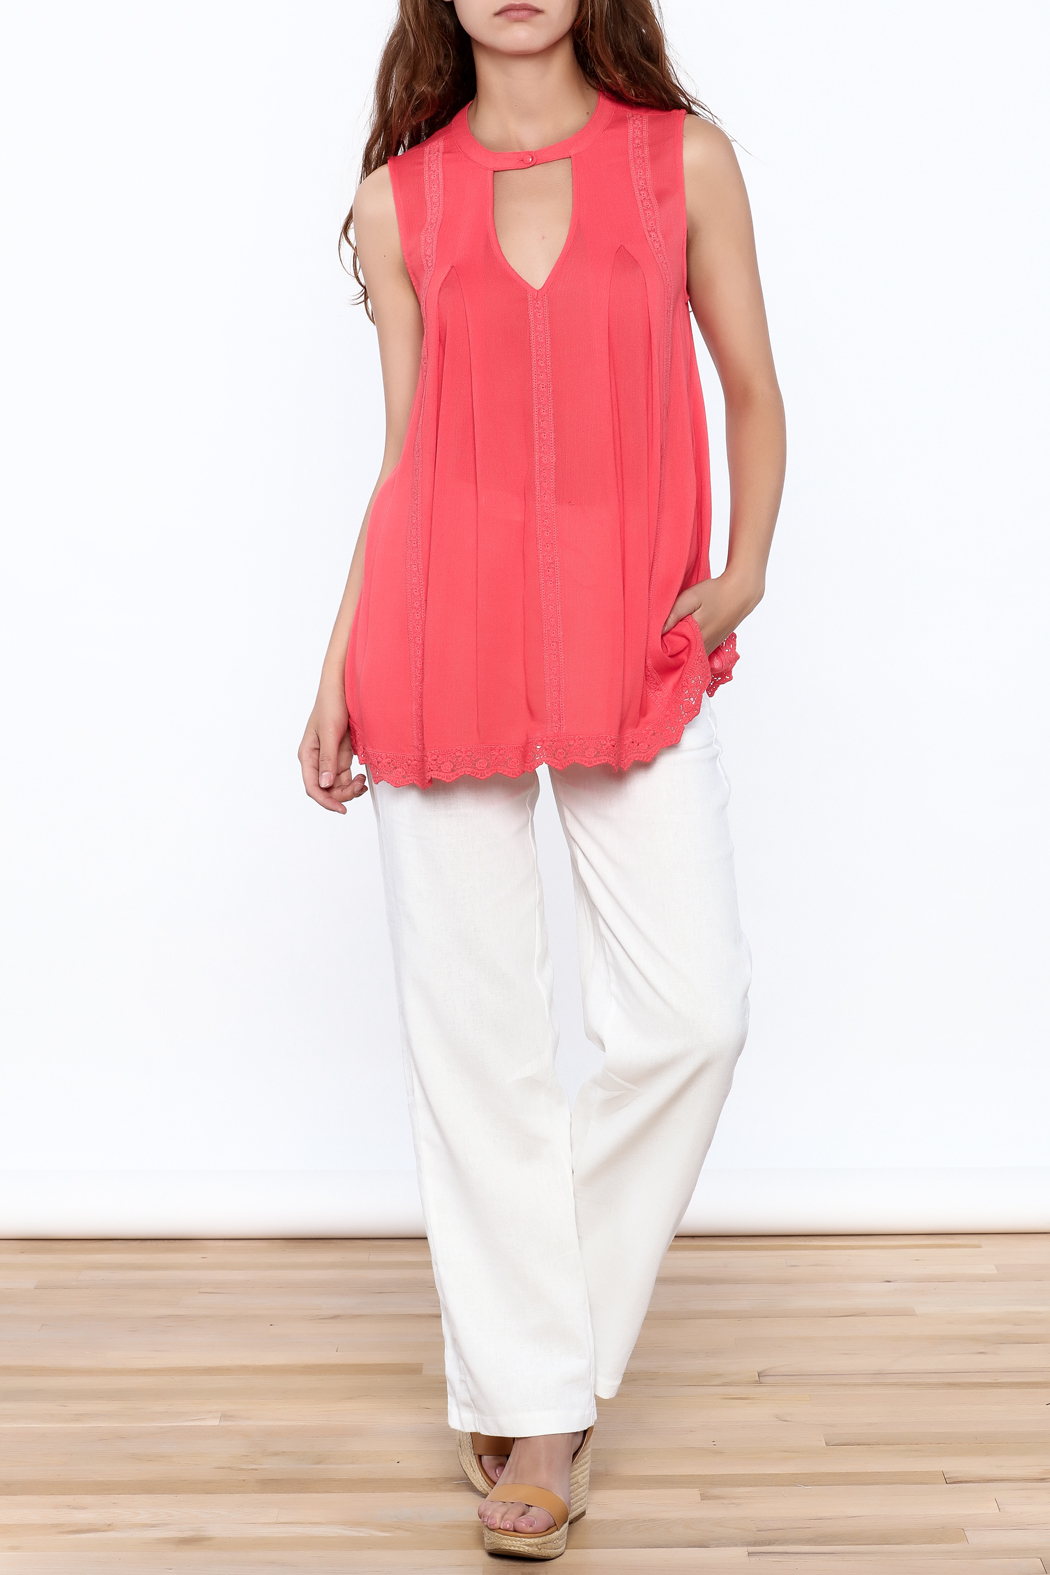 Blu Pepper Coral Sleeveless Top - Side Cropped Image